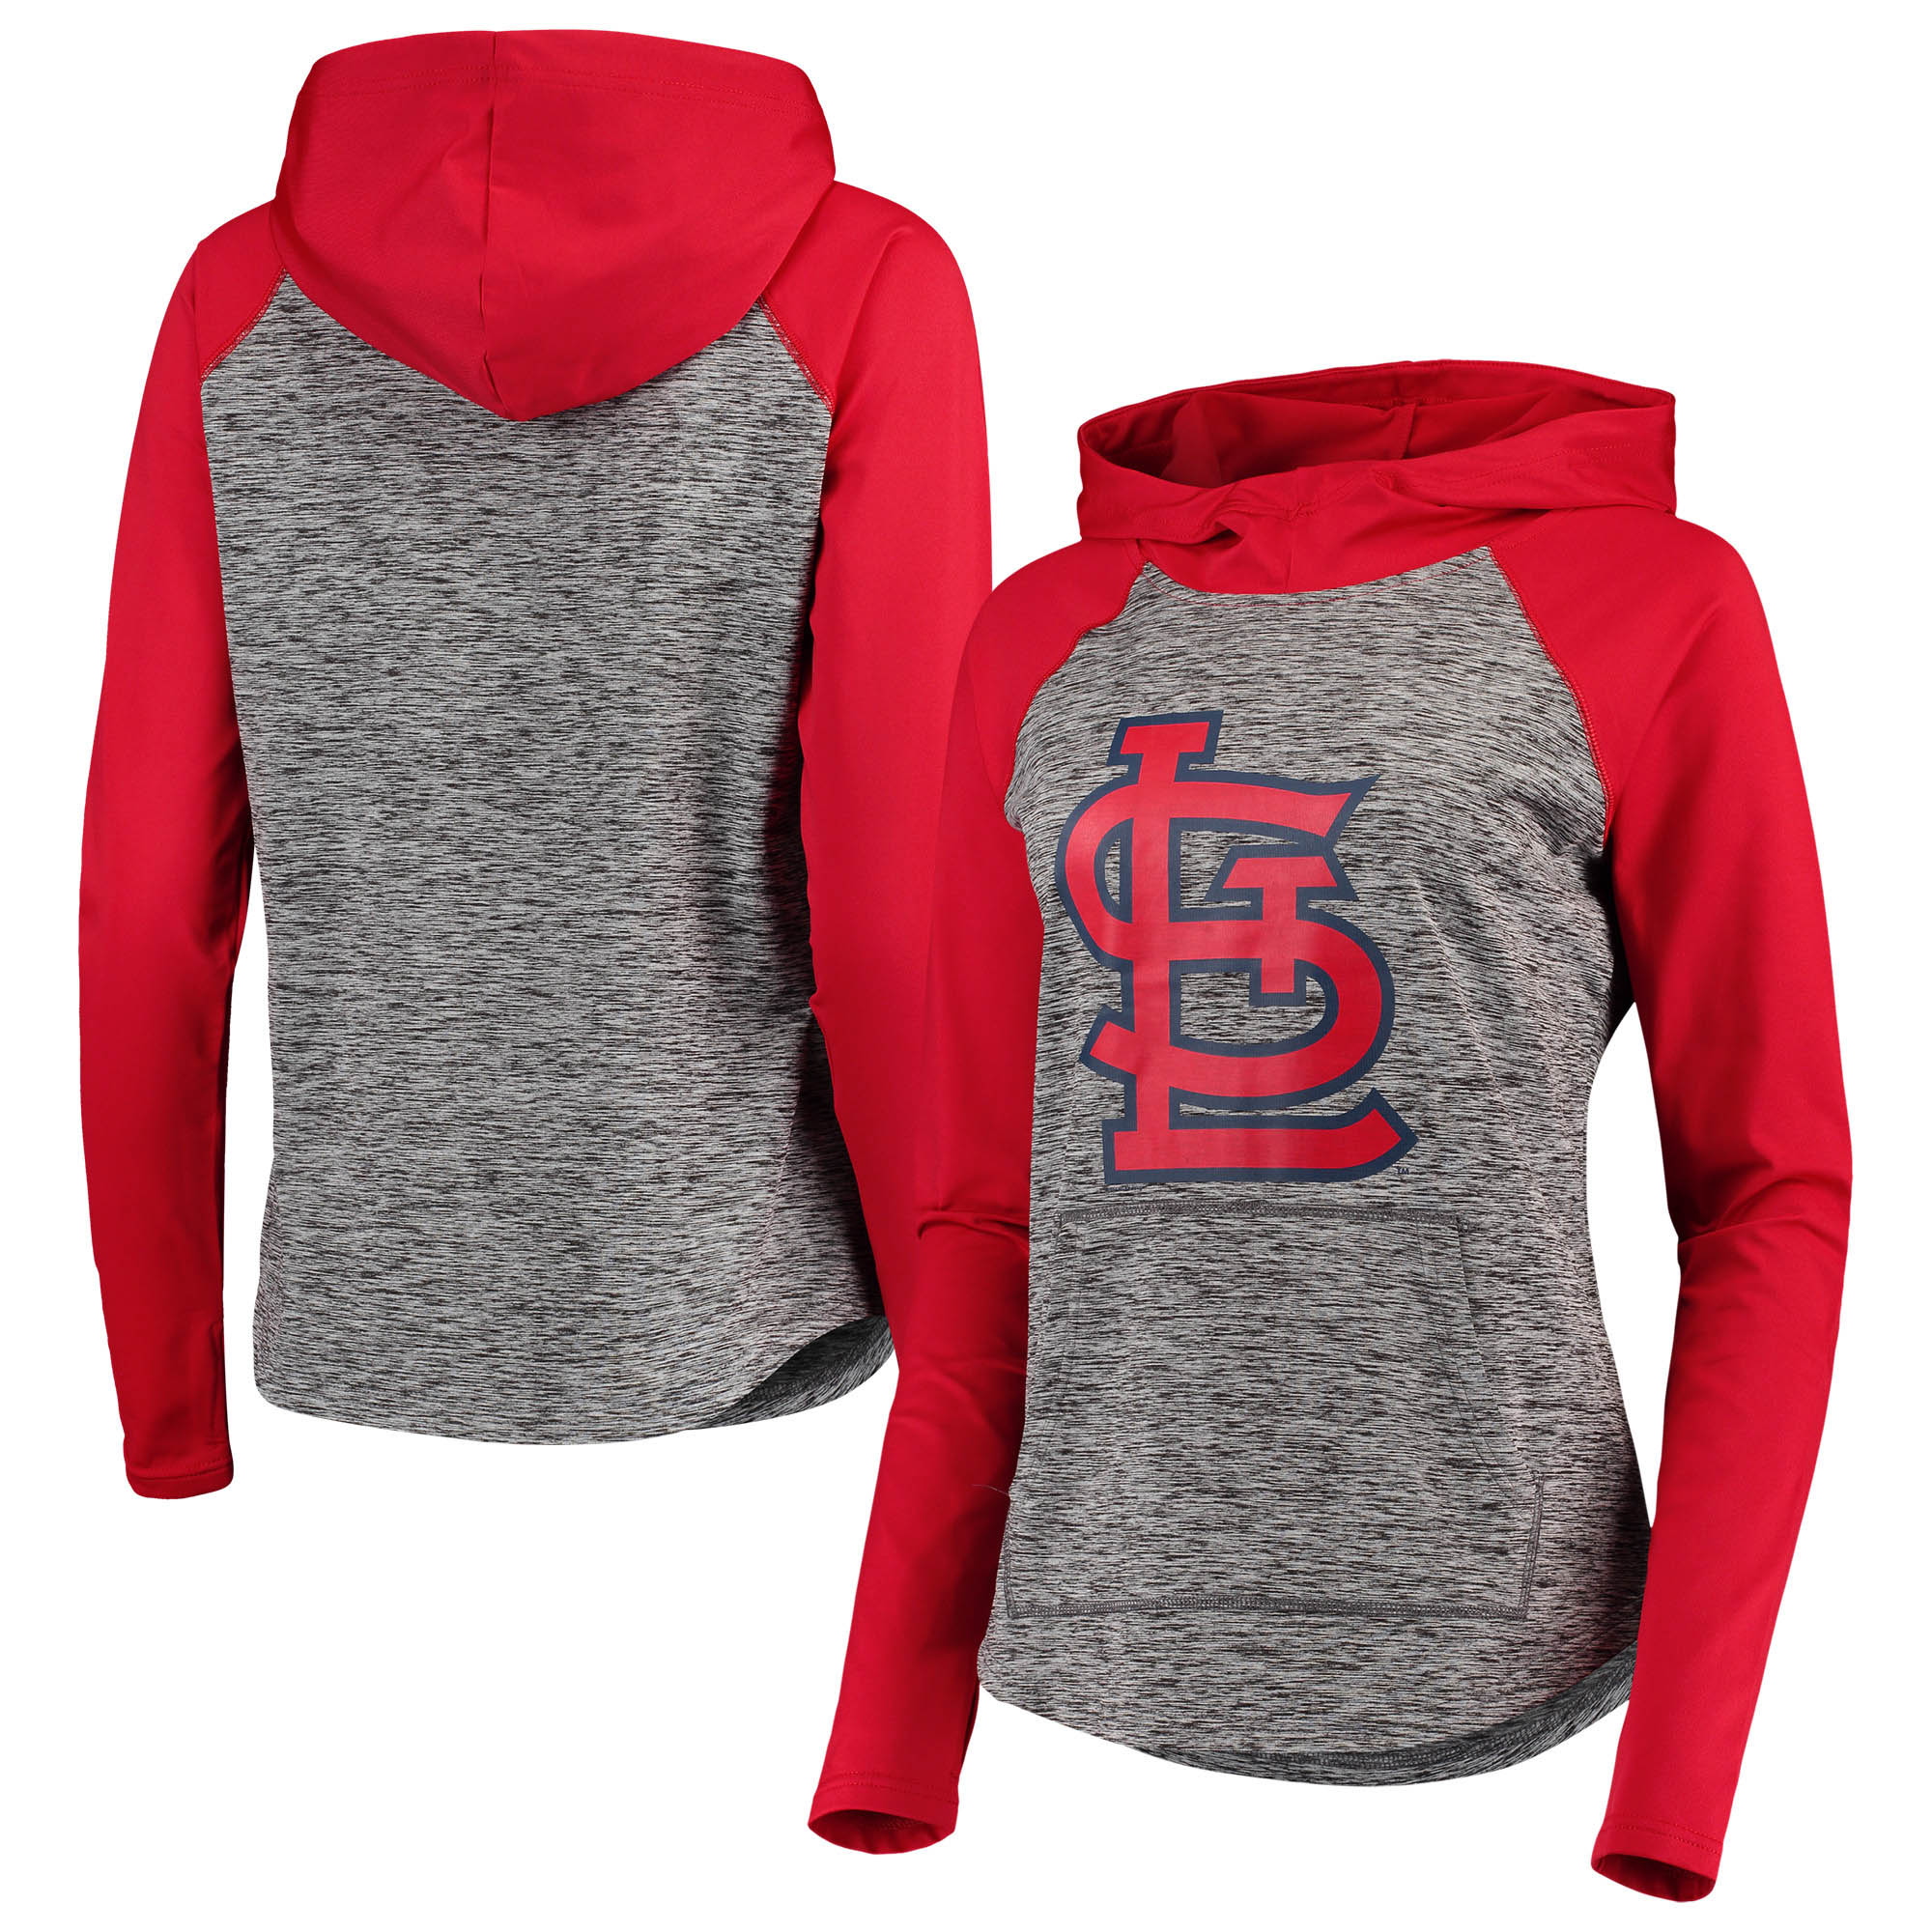 St. Louis Cardinals G-III 4Her by Carl Banks Women's Championship Ring Pullover Hoodie - Gray/Red